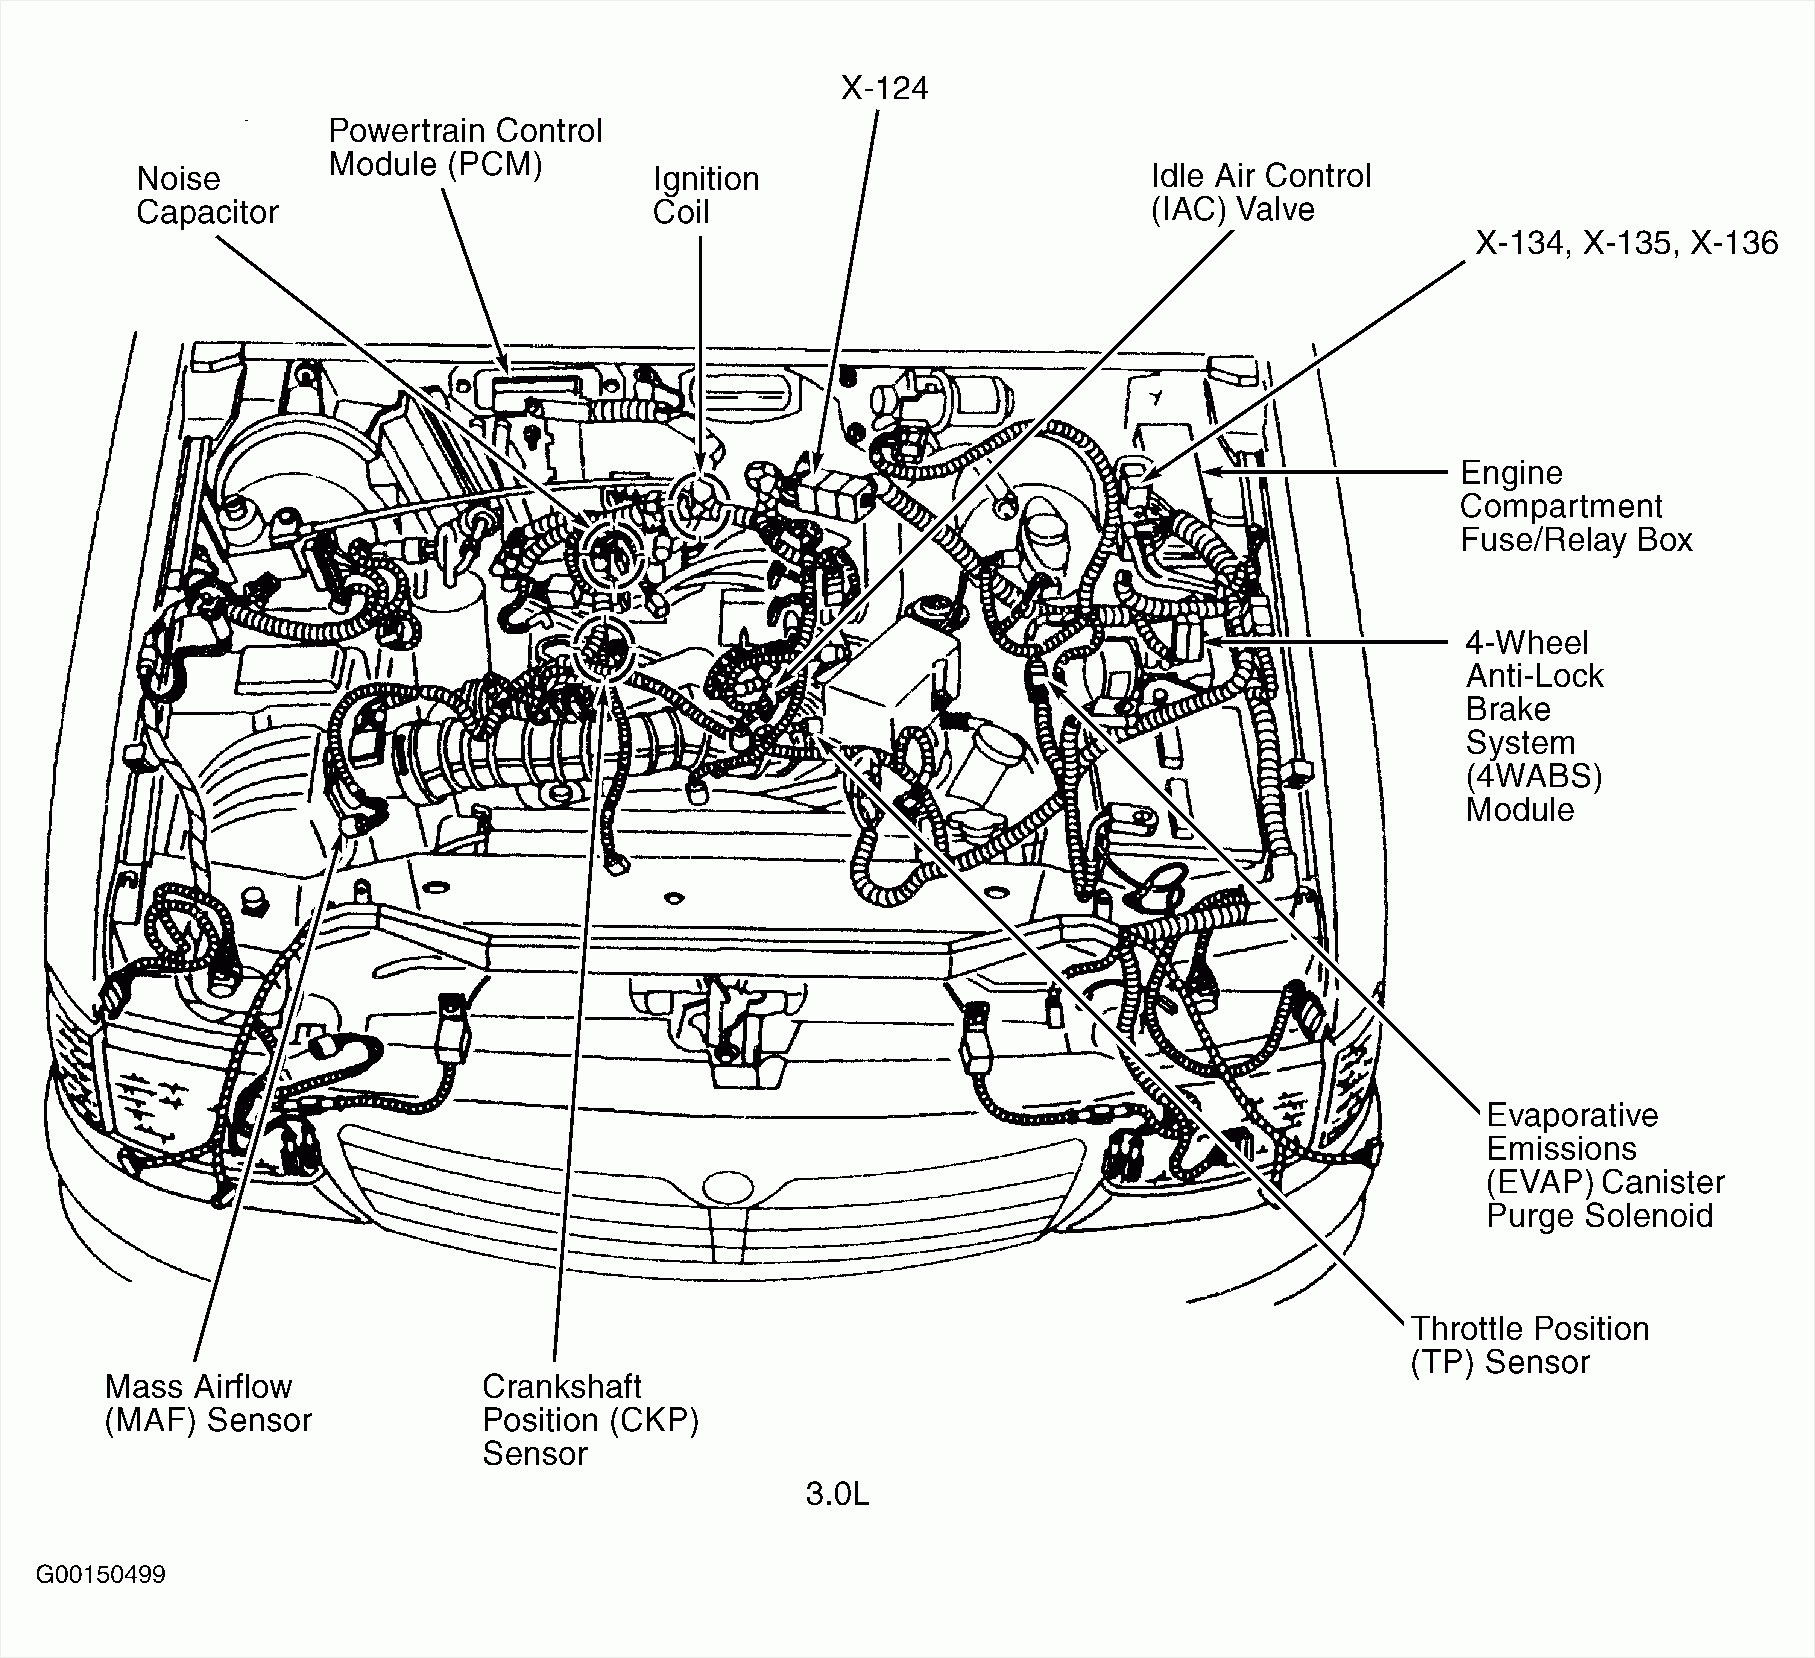 3l engine diagram wiring diagram will be a thing u2022 rh exploreandmore co  uk 2001 Mercury Sable Engine Diagram 1990 Chrysler 3.0 V6 Engine Diagram